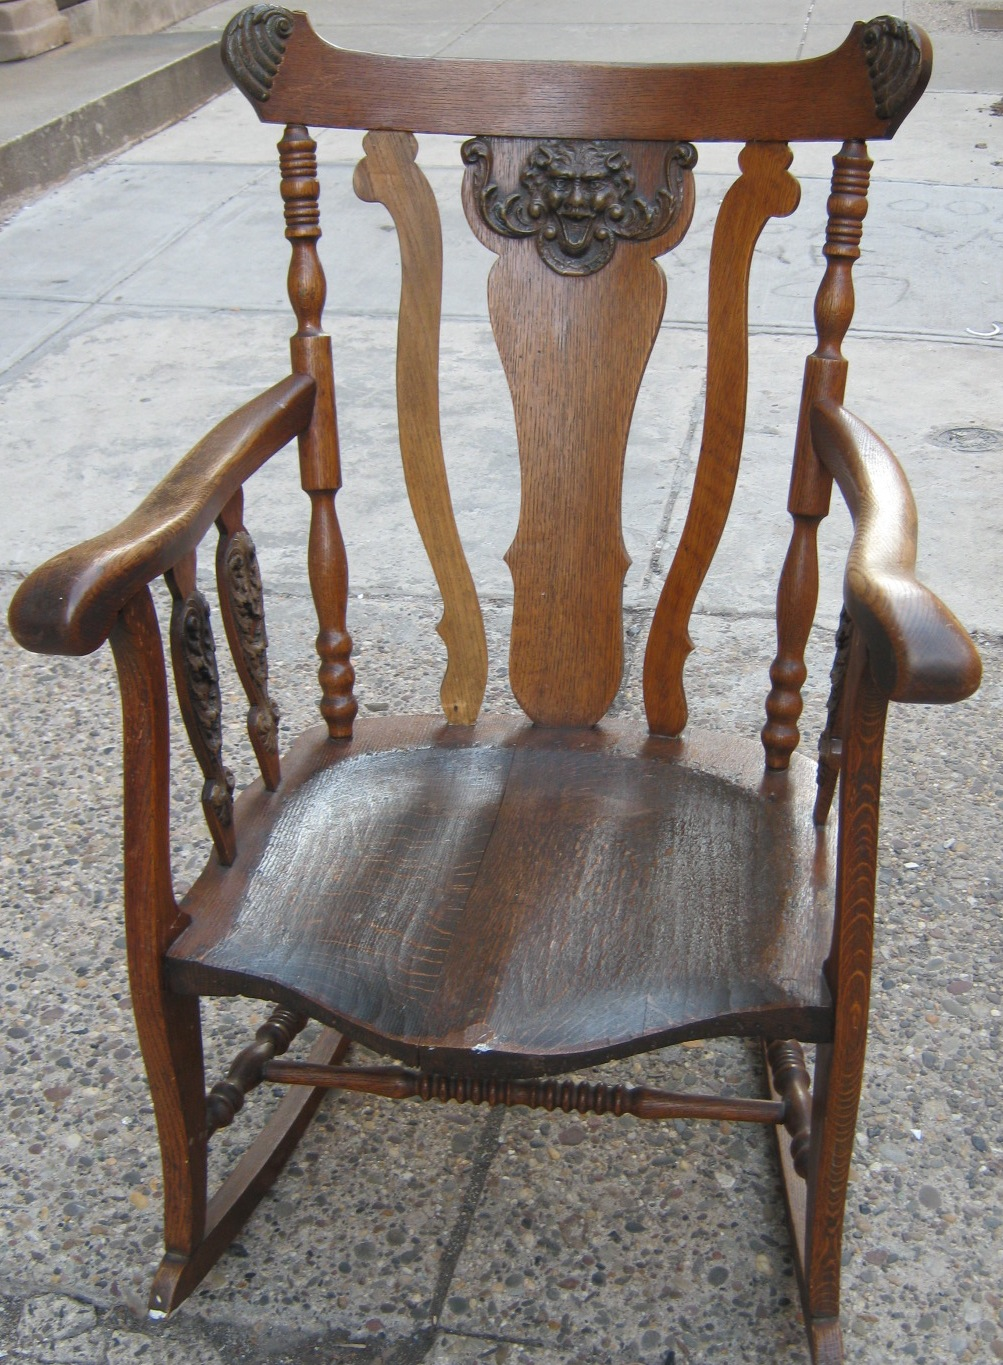 Turn Of The Century Oak Rocking Chair Sold